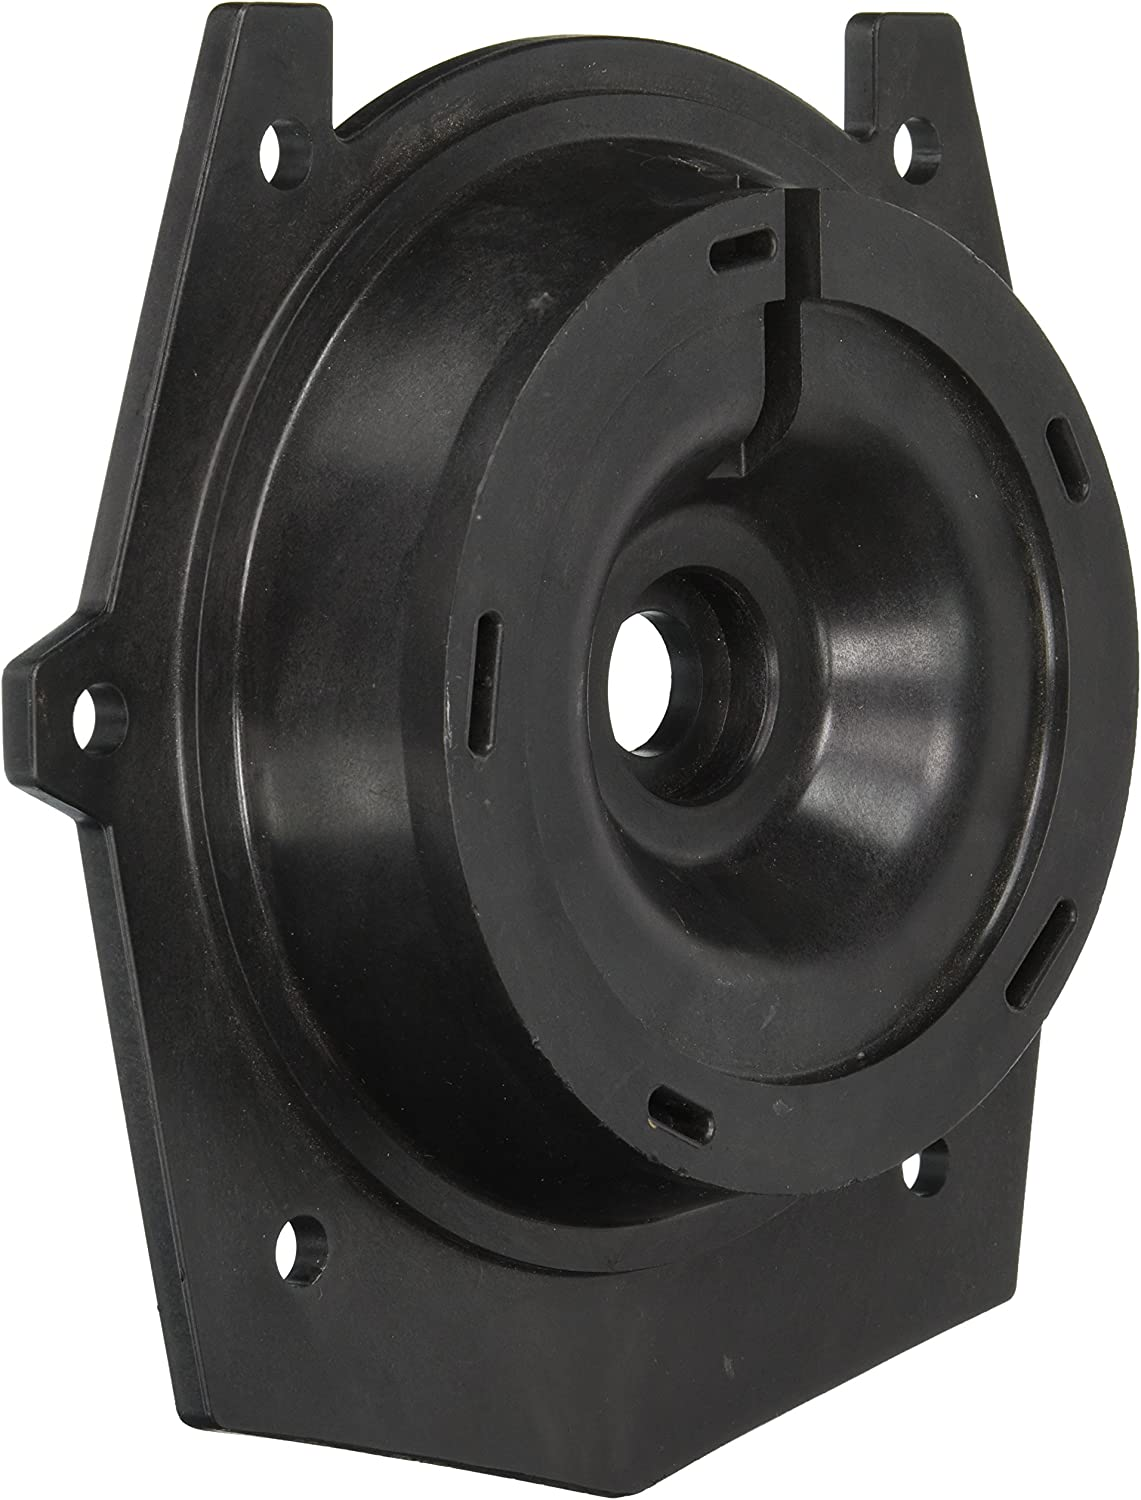 Hayward SPX3000E Impellers Seal Plate Replacement for Hayward Super Ii Pump